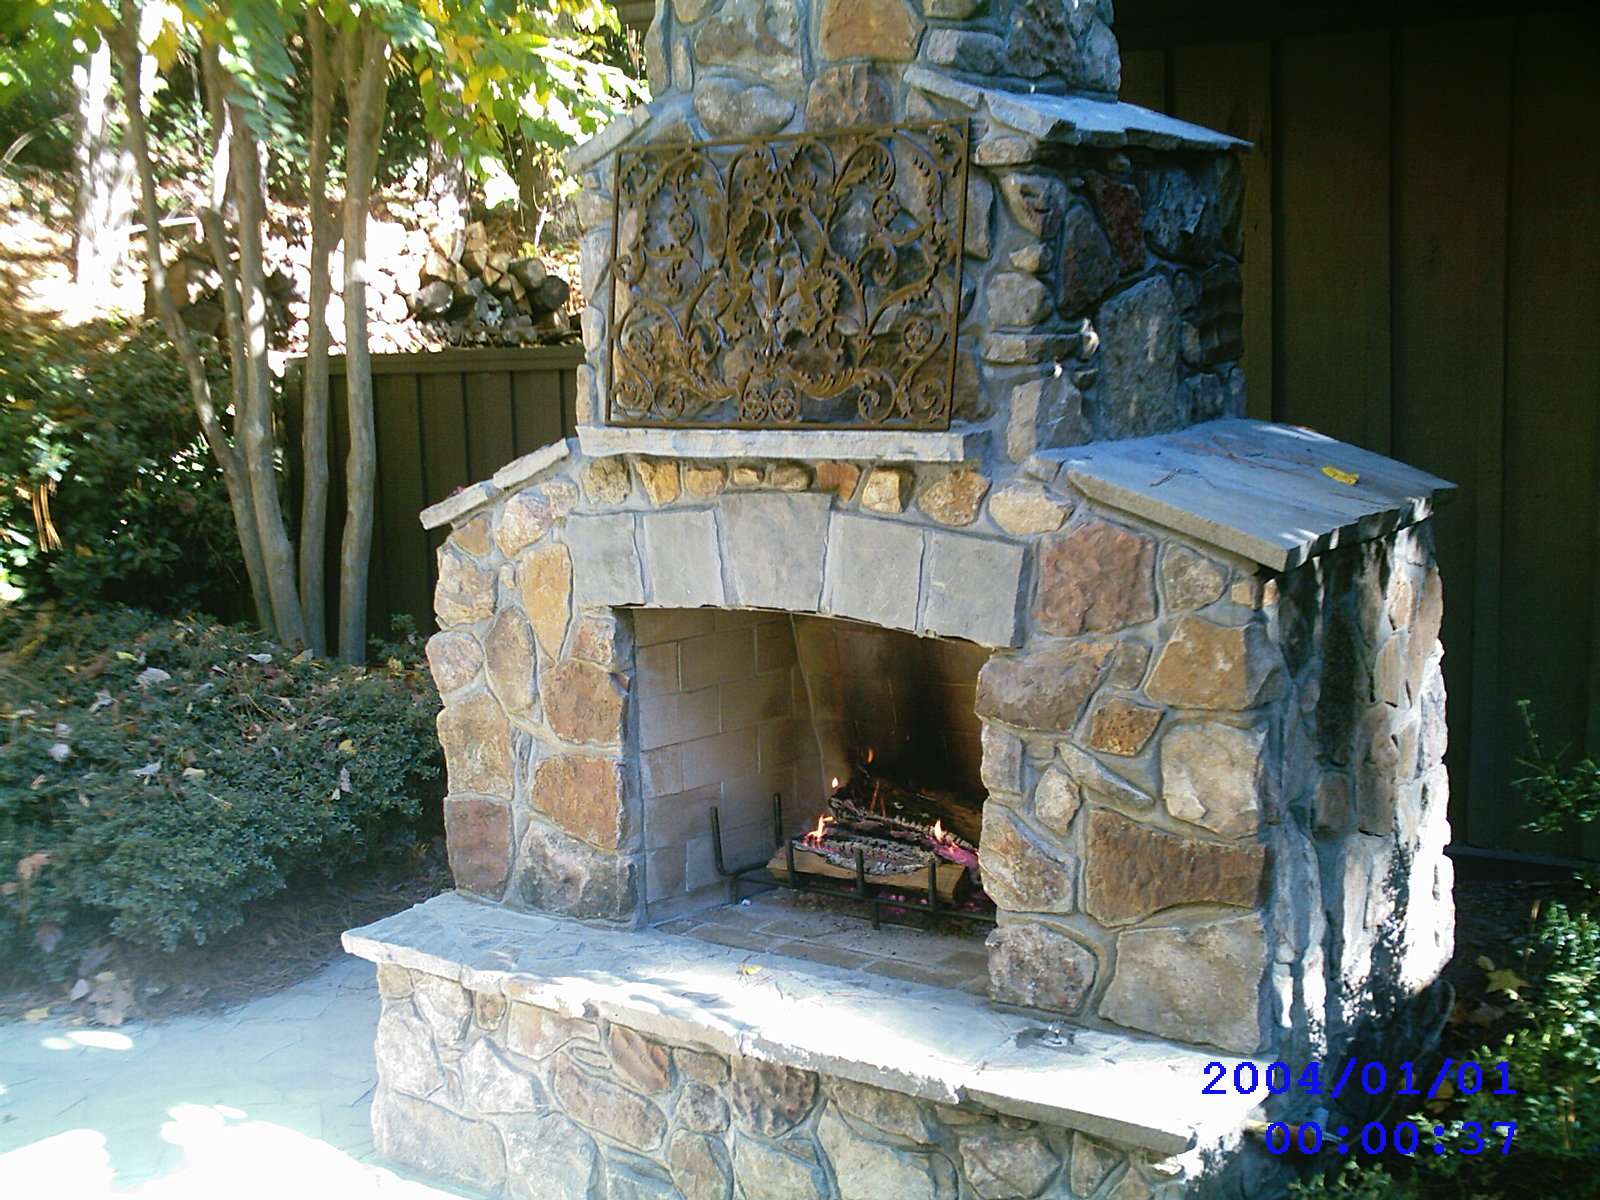 Fresh Fireplace Designs backyard fireplace ideas rooftop fireplace 15 diy how to make your backyard awesome ideas 3 14 Best Images About Outdoor Fireplaces On Pinterest Outdoor Fireplace Plans Fireplace Design And Corner Fireplaces